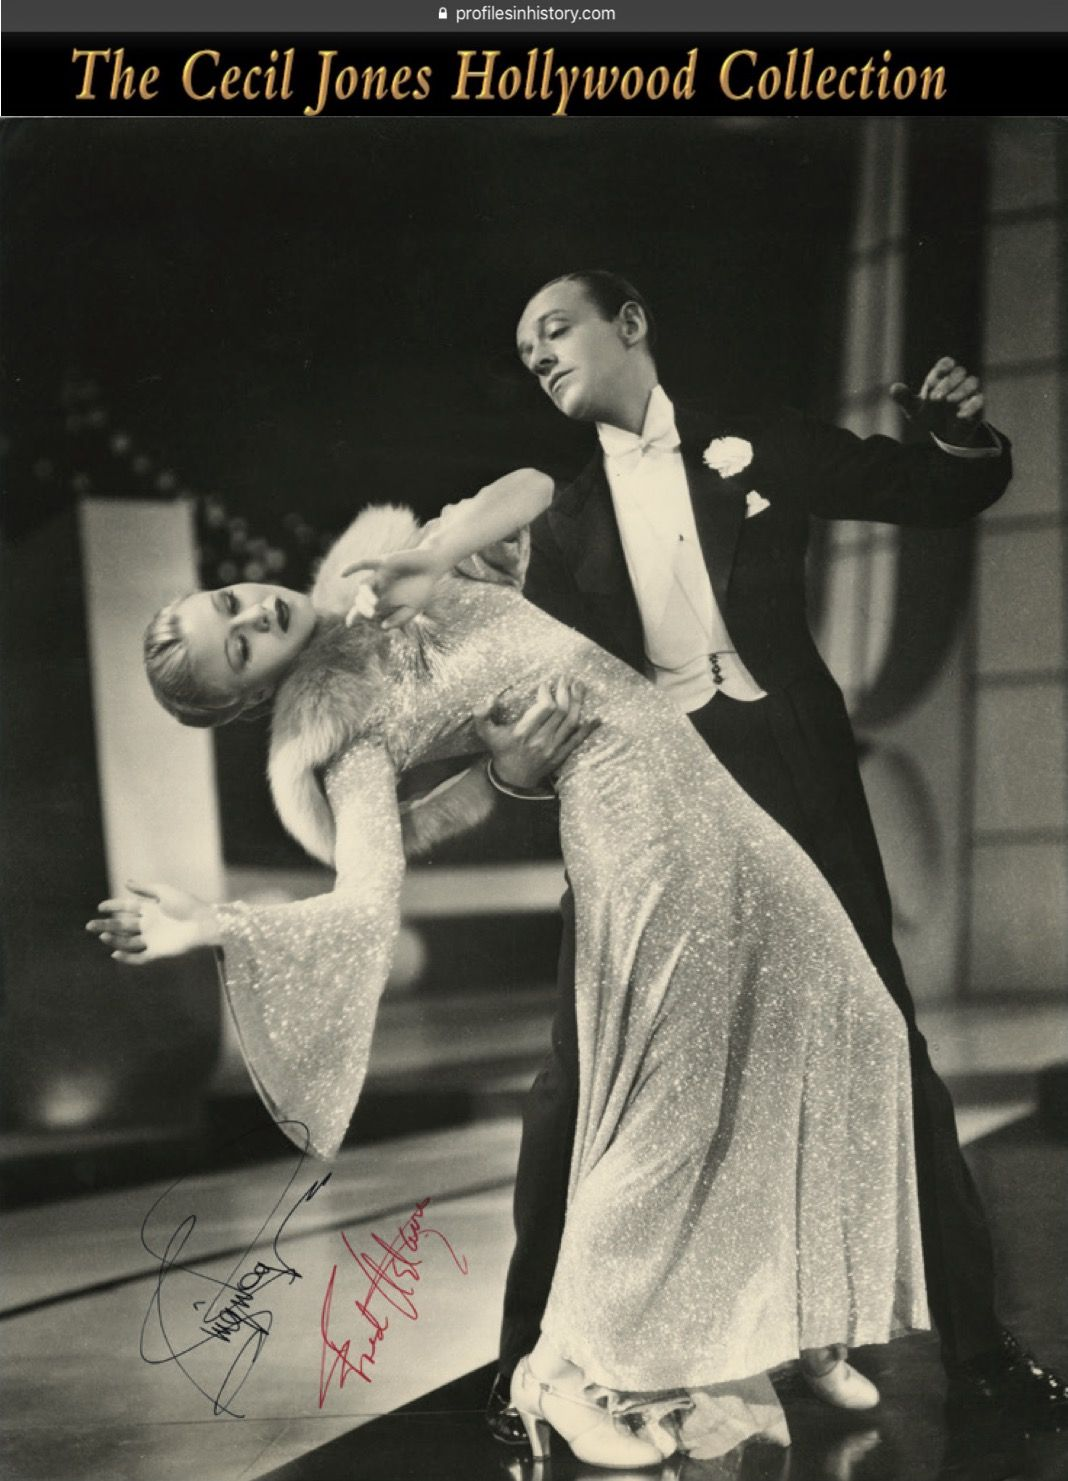 Ginger Rogers and Fred Astaire - Signed oversize production